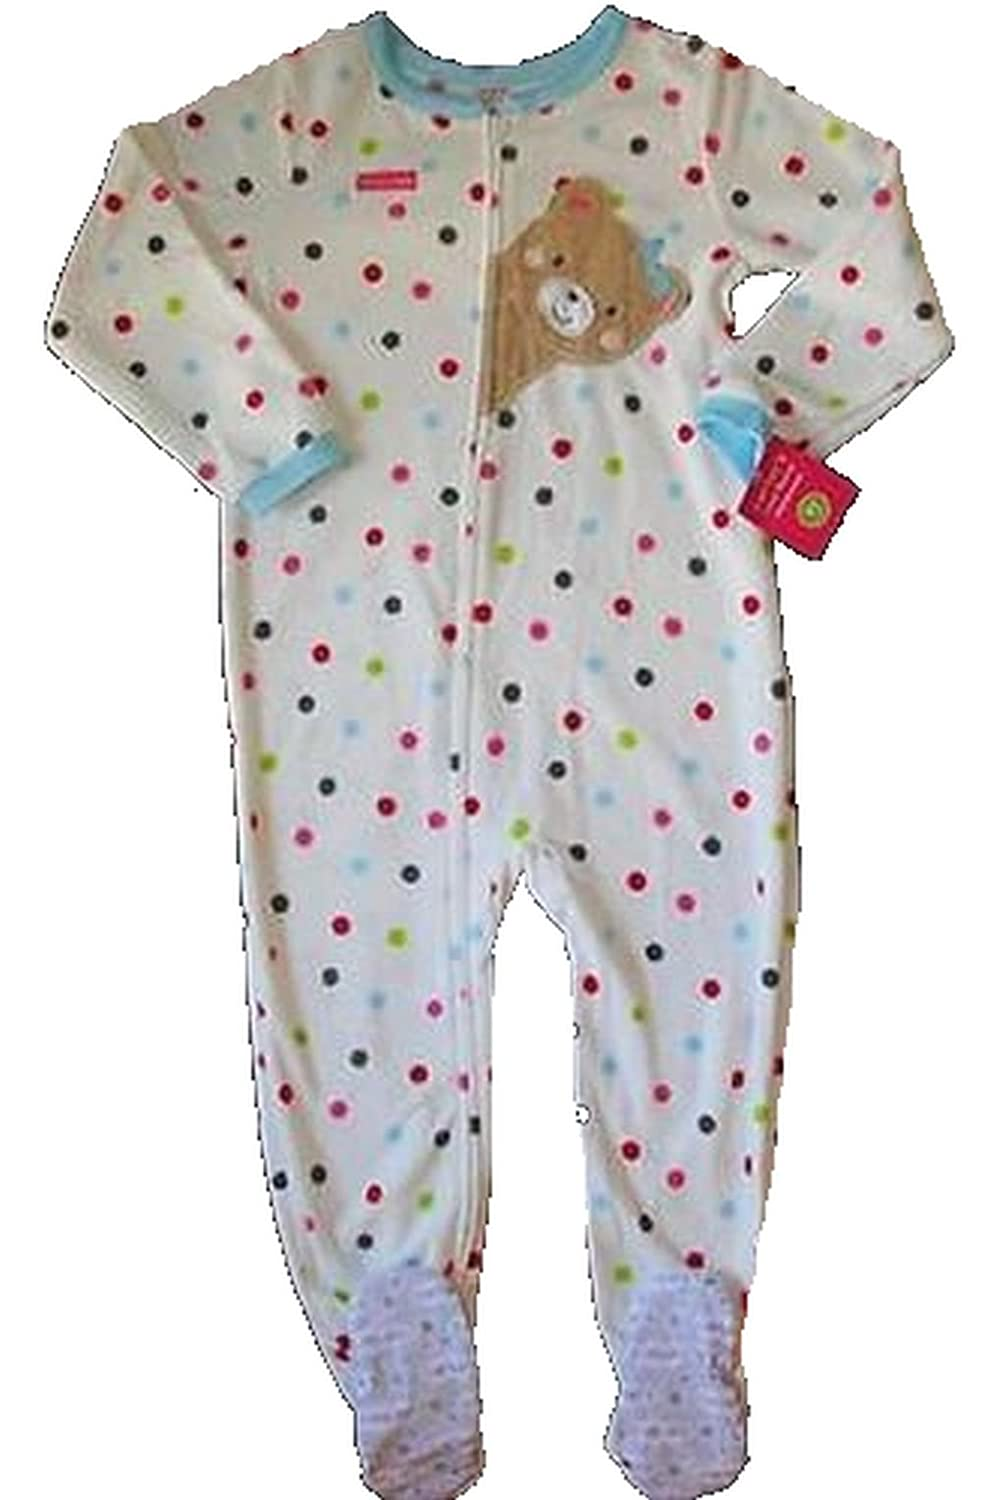 5fa00f65091e CARTER S Girl s Size 4T Fleece Polka Dot Teddy Footed Pajama Sleeper ...